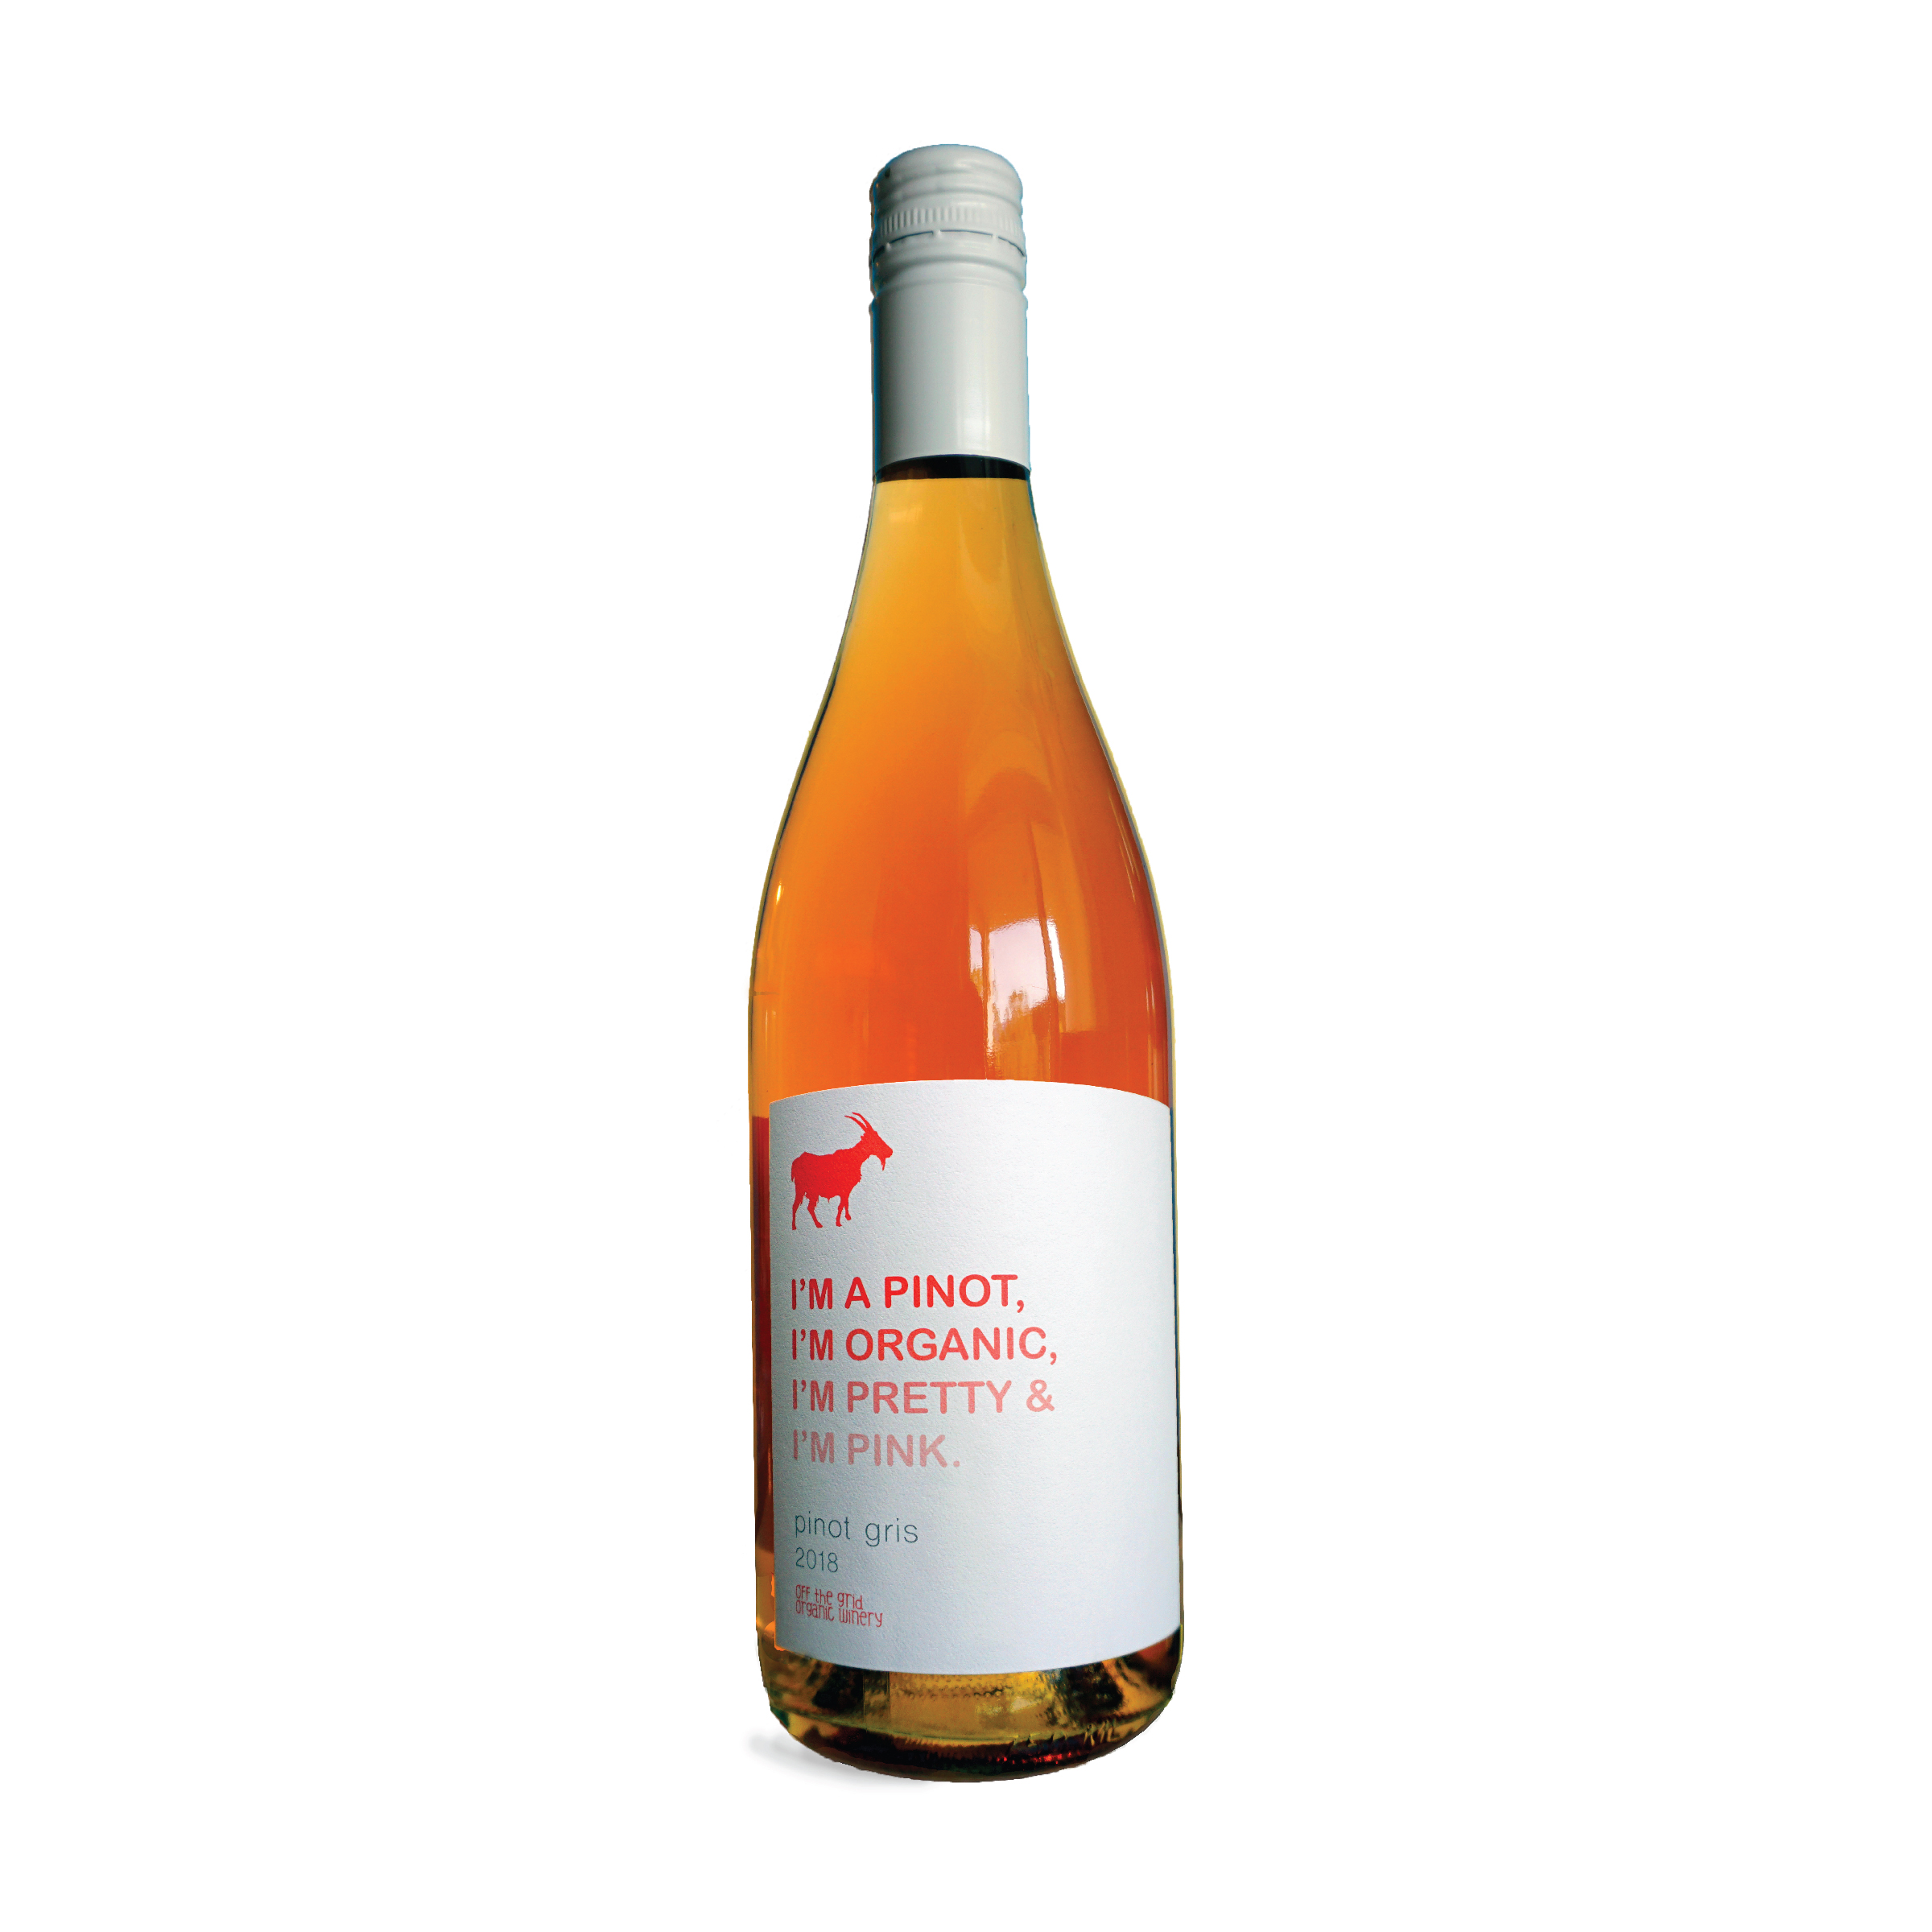 SOLD OUT2018 Pink Pinot Gris - $25.00These Pinot Gris grapes were cold soaked for 4 days, giving it its unique colour. Notes of melon, candied berries, sour patch kids, and almond round out this unique Pinot Gris. Pairs best with chick flicks and potato chips.